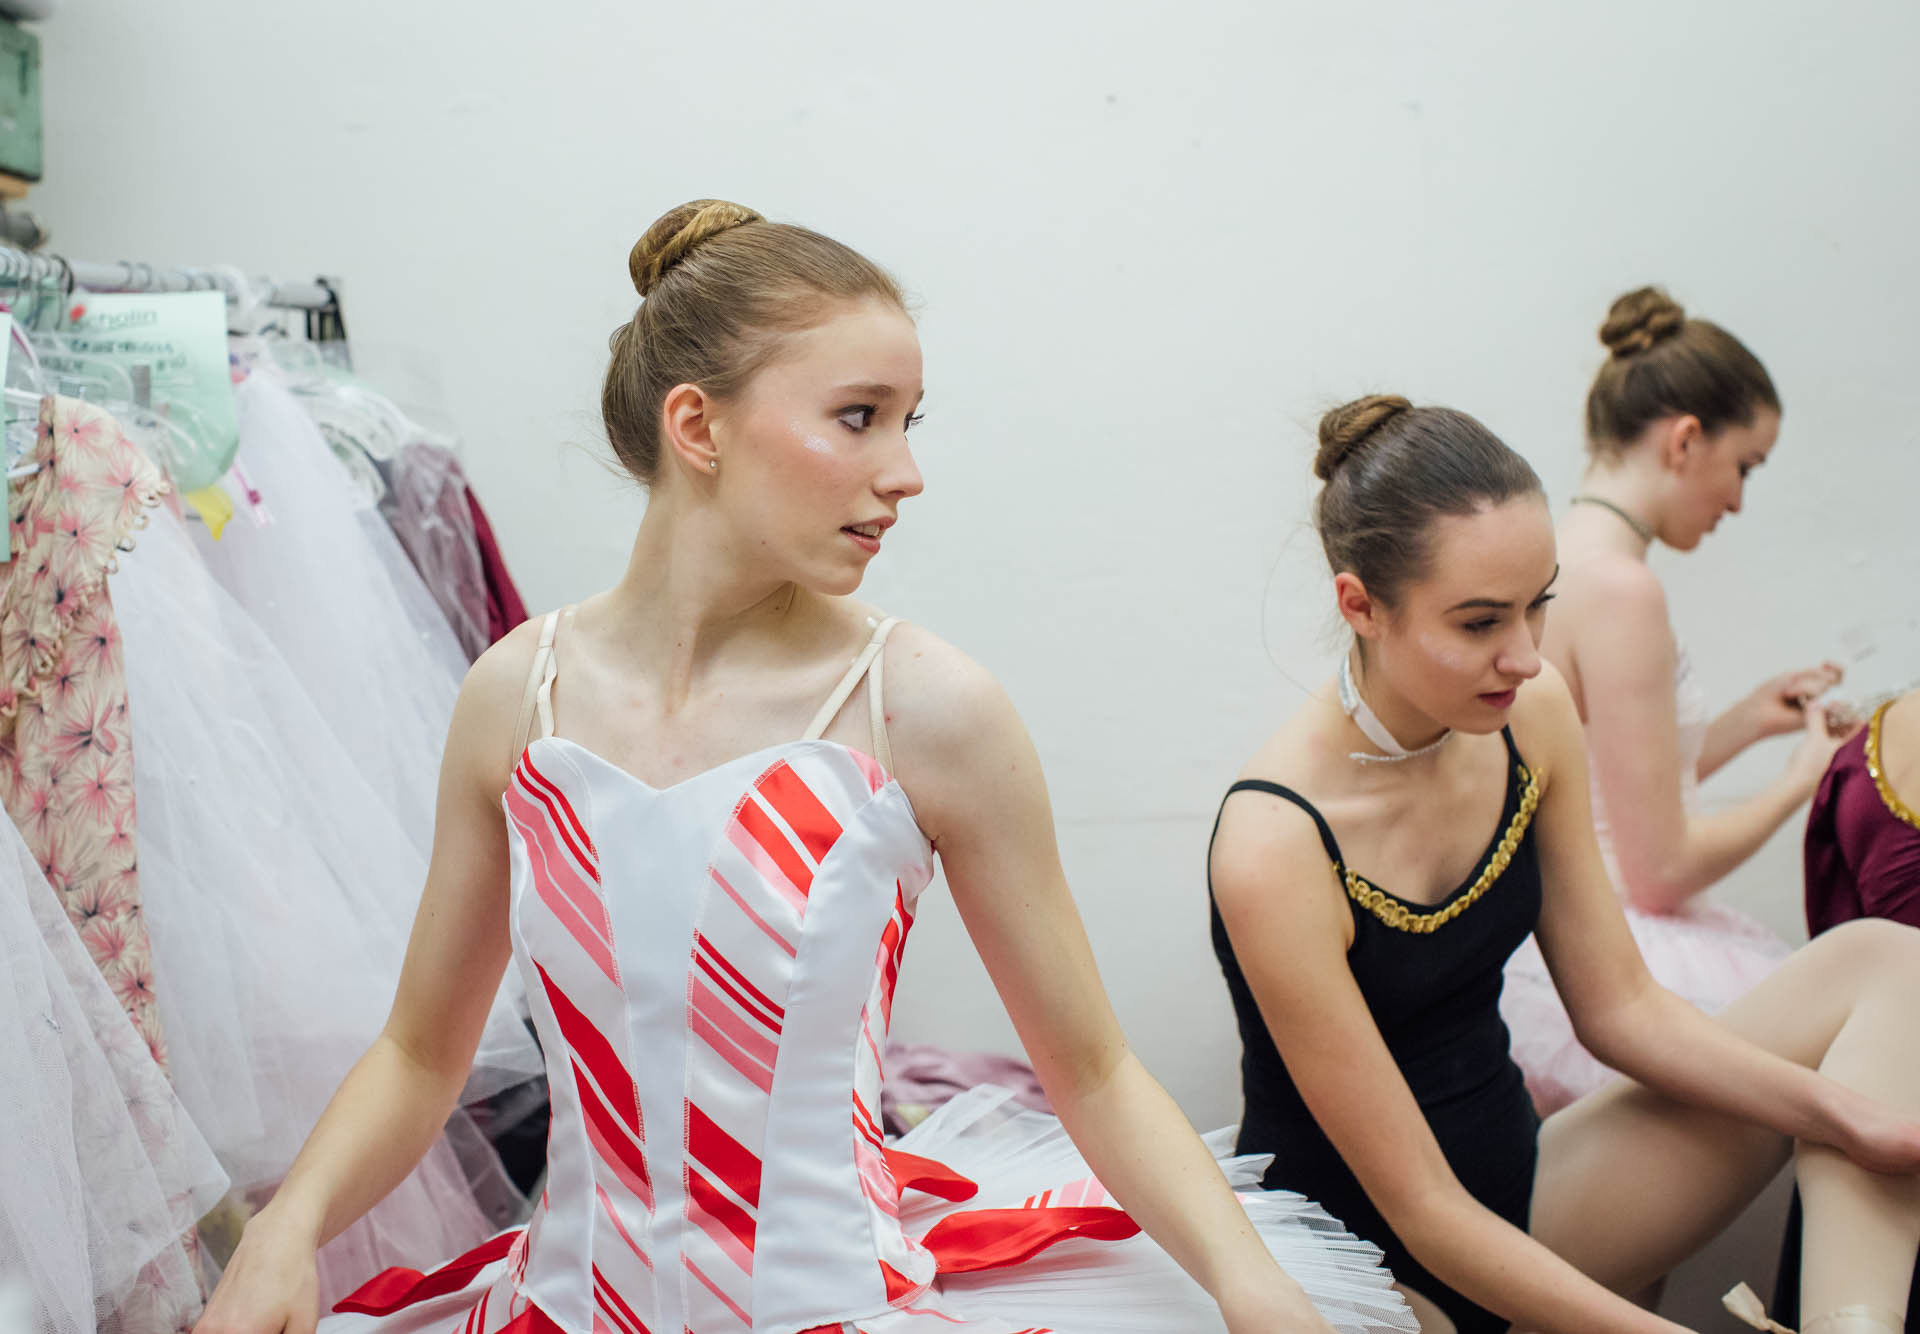 nutcracker-candy-cane-ballerina-dressing-room-3523